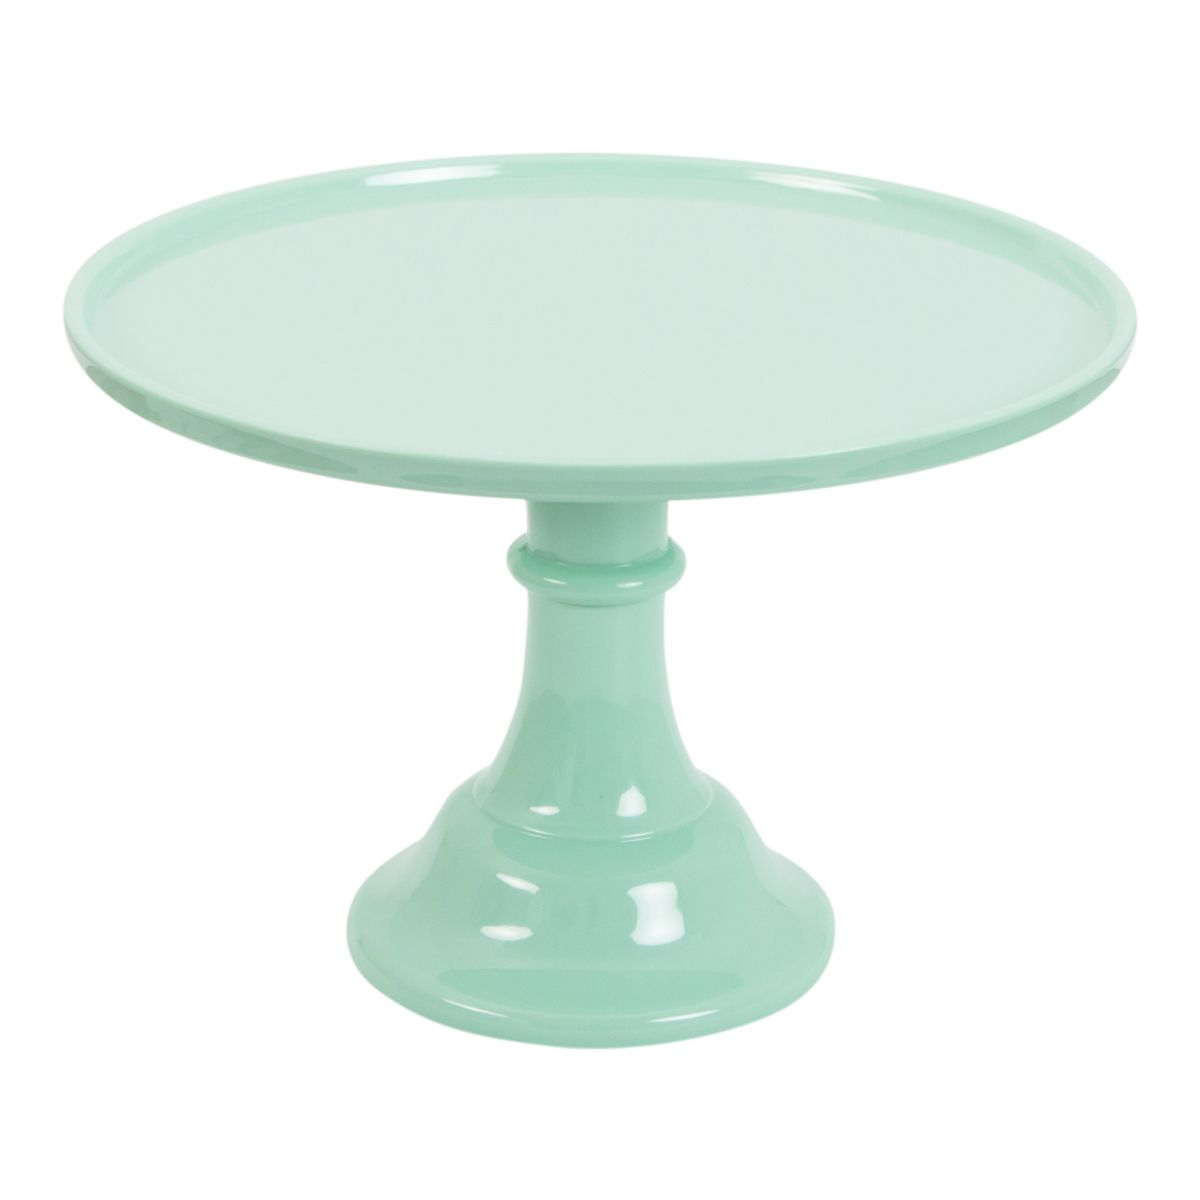 "ALLC Cake Stand Large Mint (11.9"")"